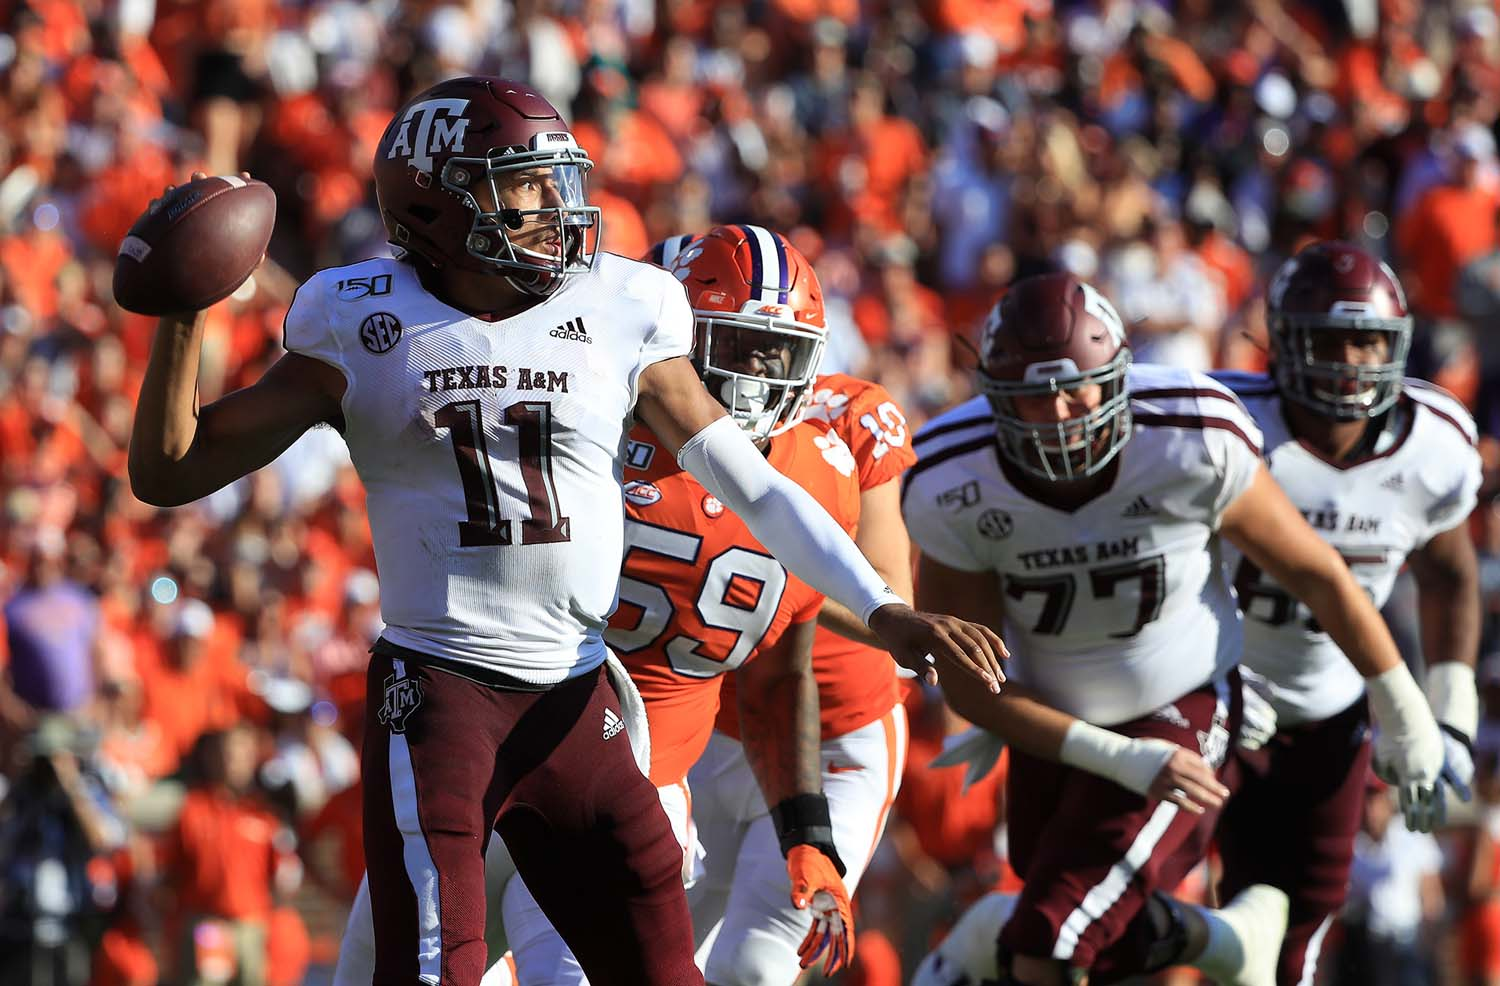 Texas A&M quarterback Kellen Mond (11) drops back to pass against Clemson at Memorial Stadium in Clemson, South Carolina, on Saturday, Sept. 7. Clemson won, 24-10.